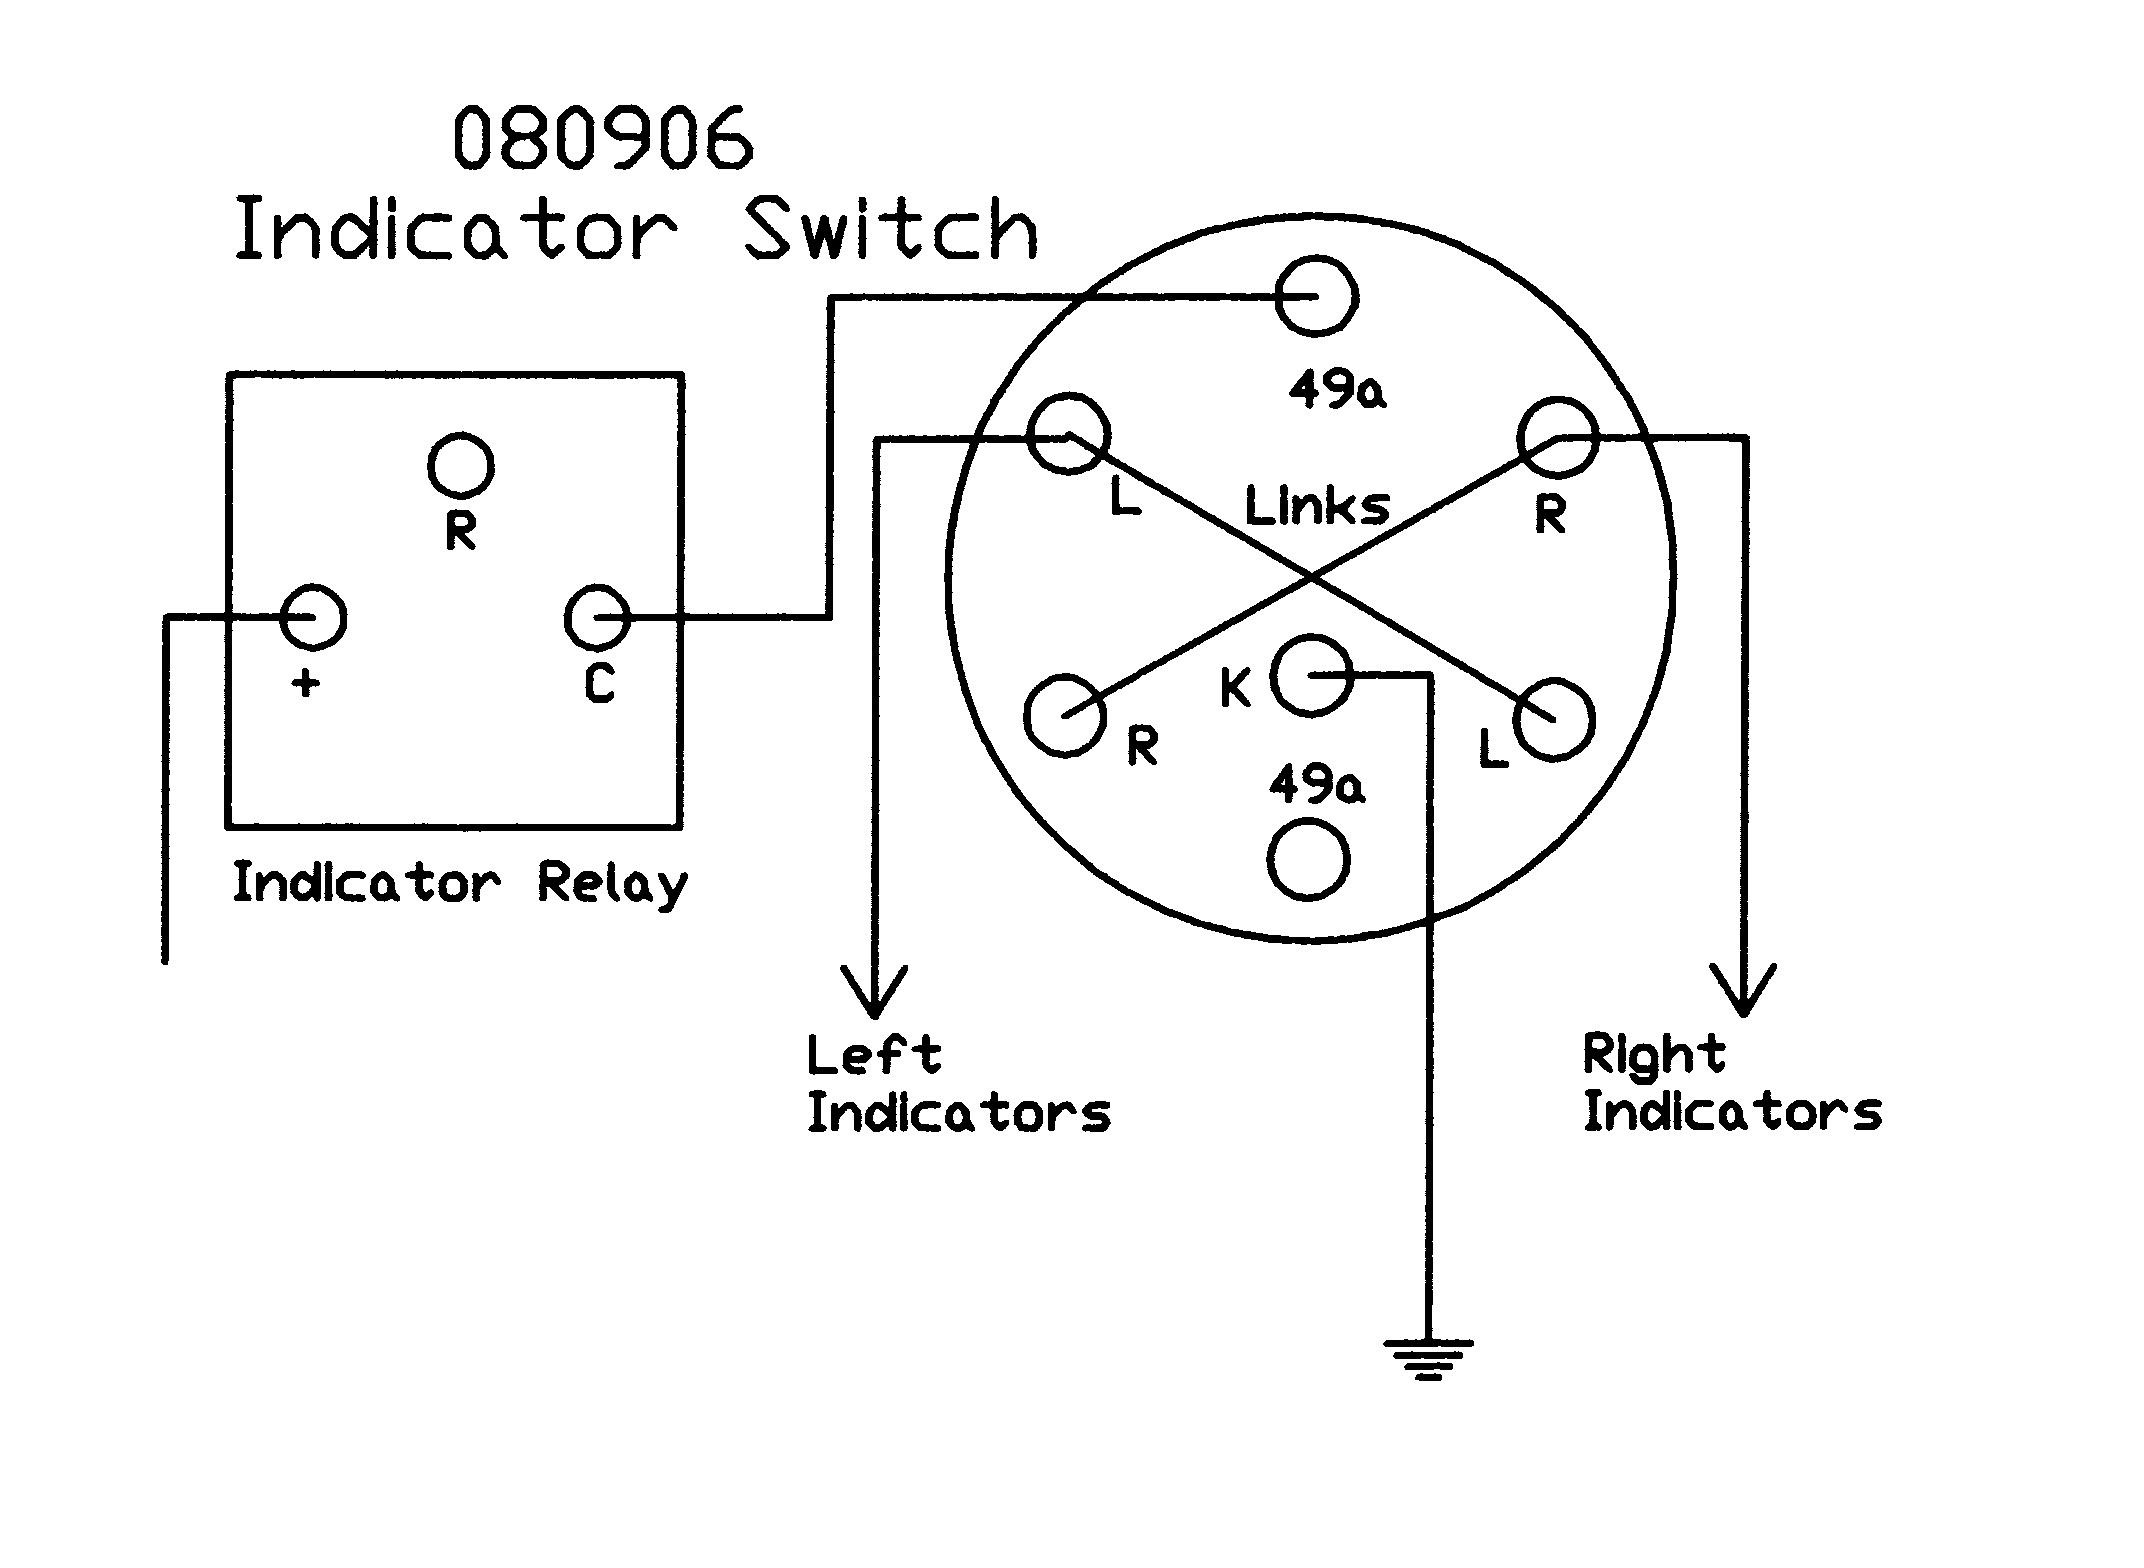 wiring diagram for a battery isolator with 44 on Wiring Diagram For Smart Relay moreover Selector Switch 3 Position Wiring Diagram also Warn Solenoid Wiring Question further Directed Electronics Wiring Diagrams Nissan 2010 Altima Sedan also Single Phase To Three Phase Converter.